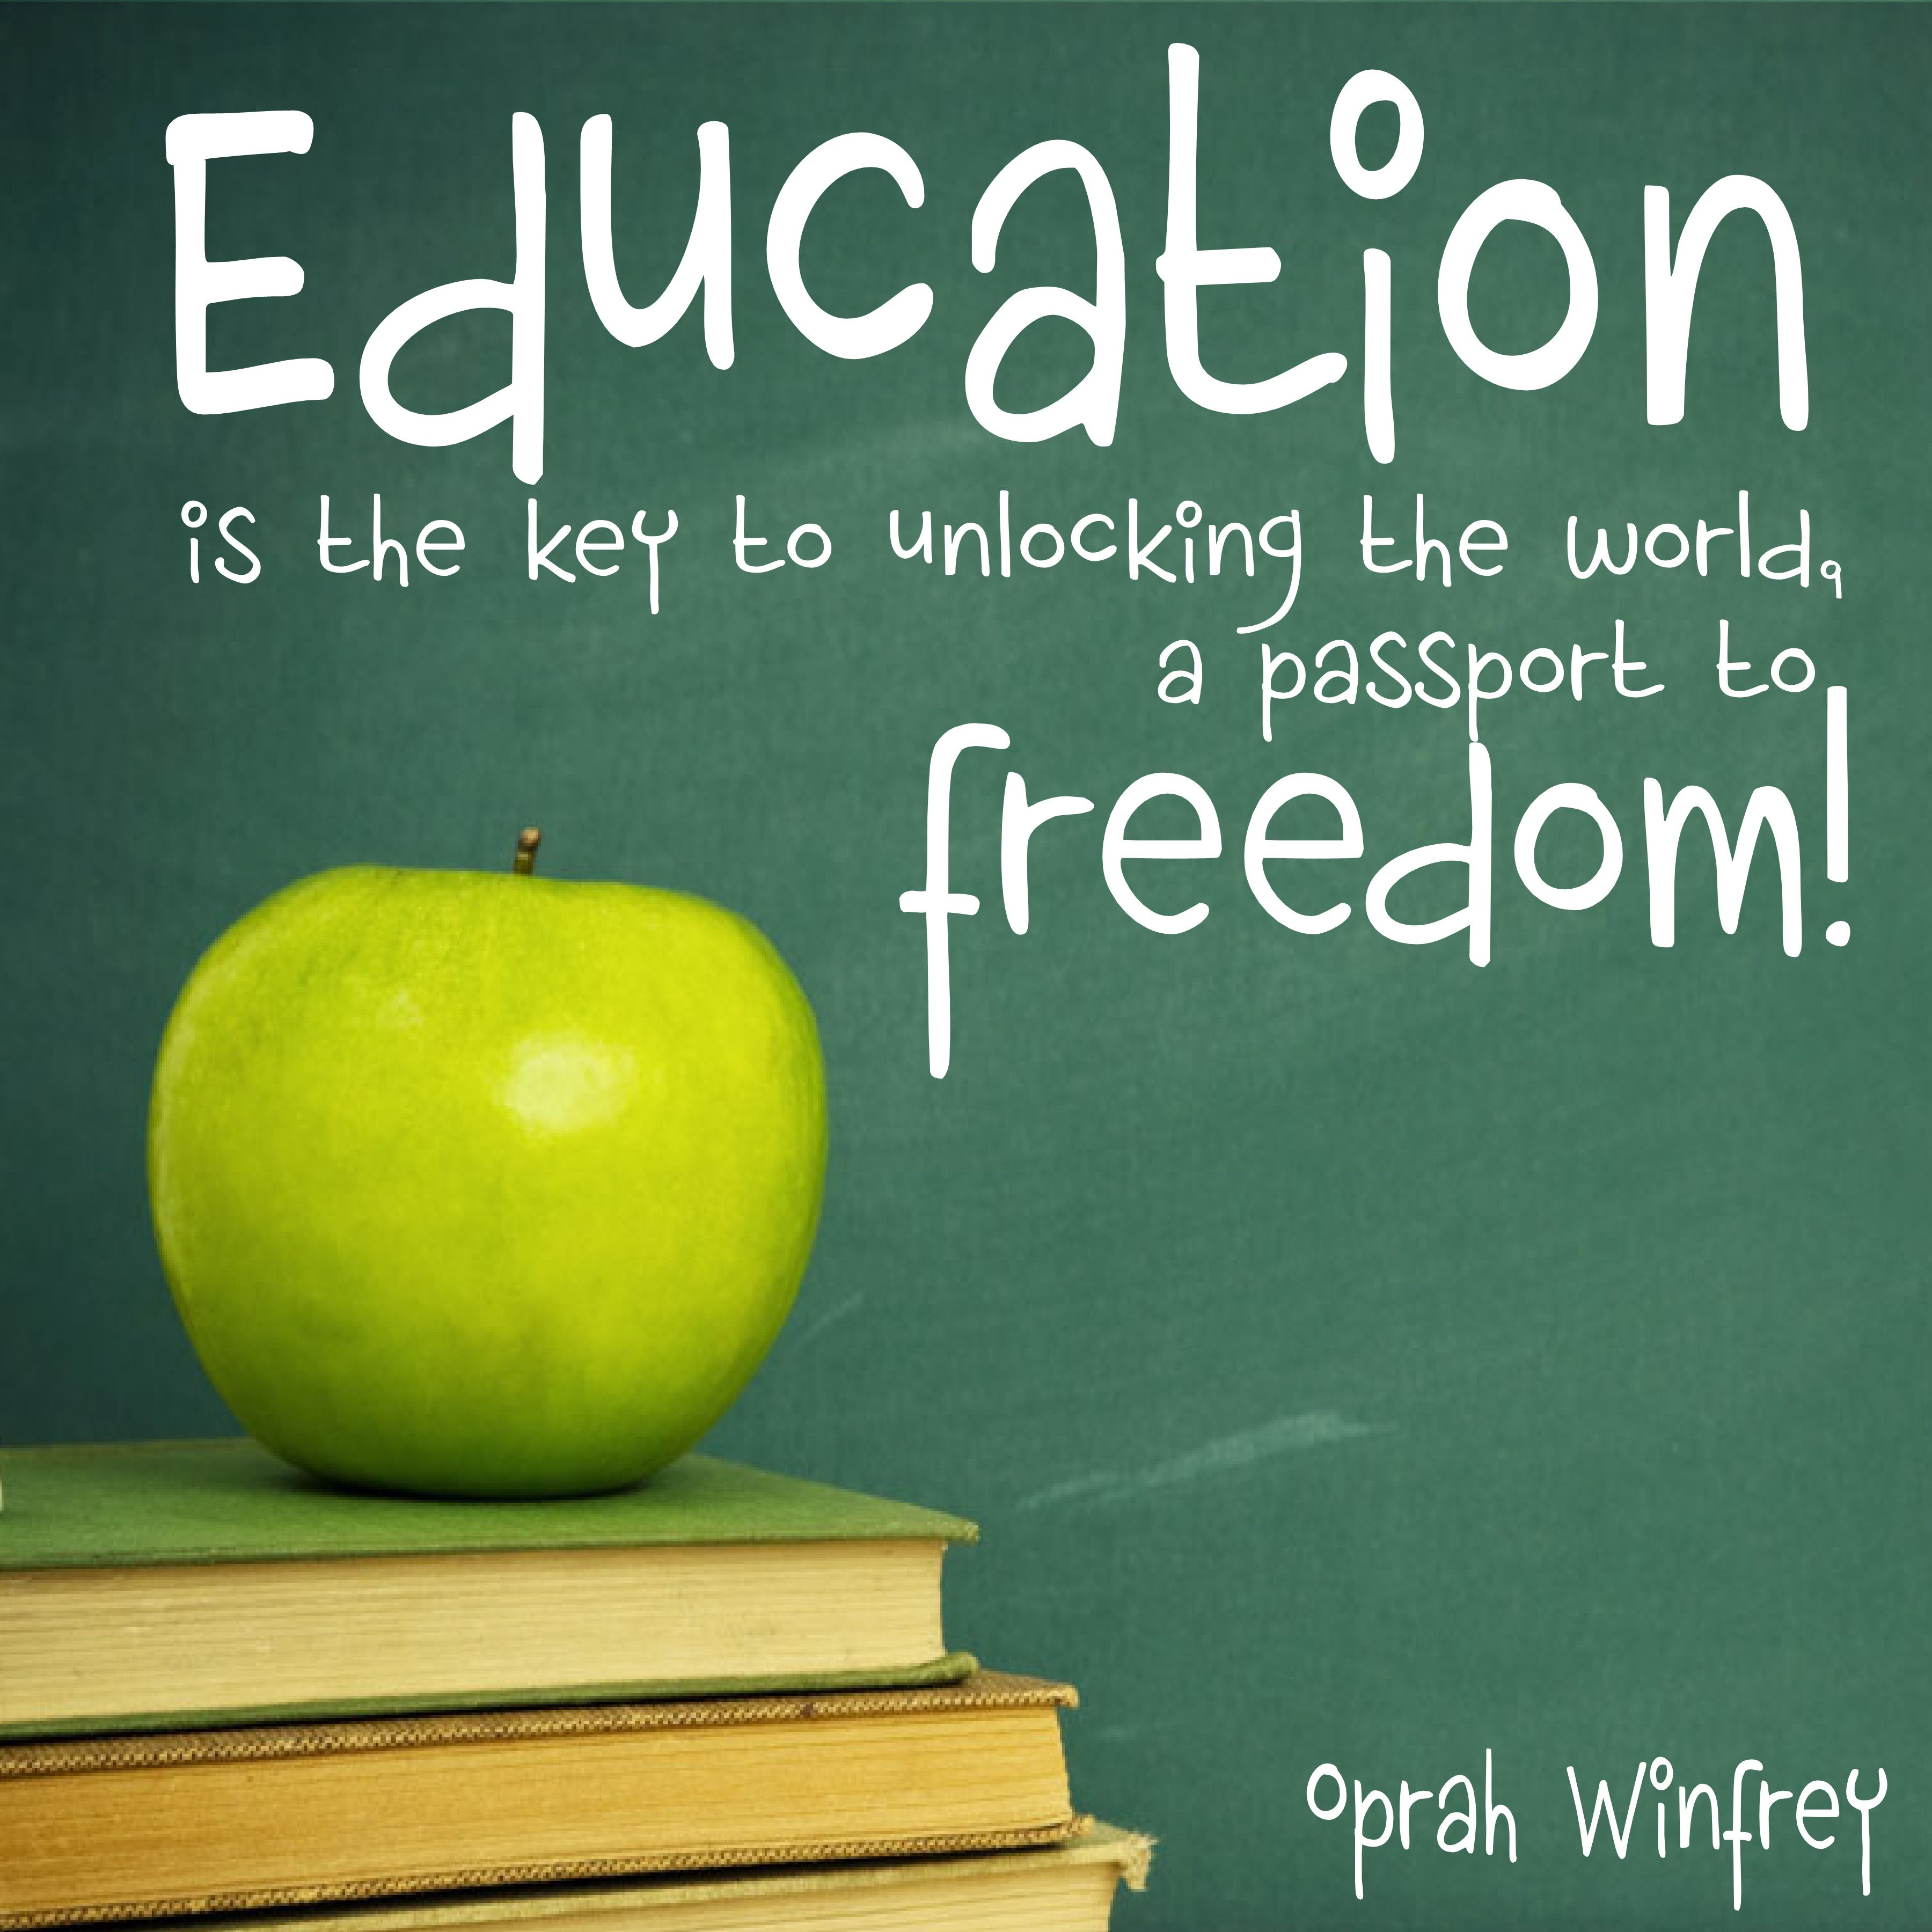 Groovy Education Is The Key To Unlocking The World A Passport To Freedom Short Hairstyles Gunalazisus